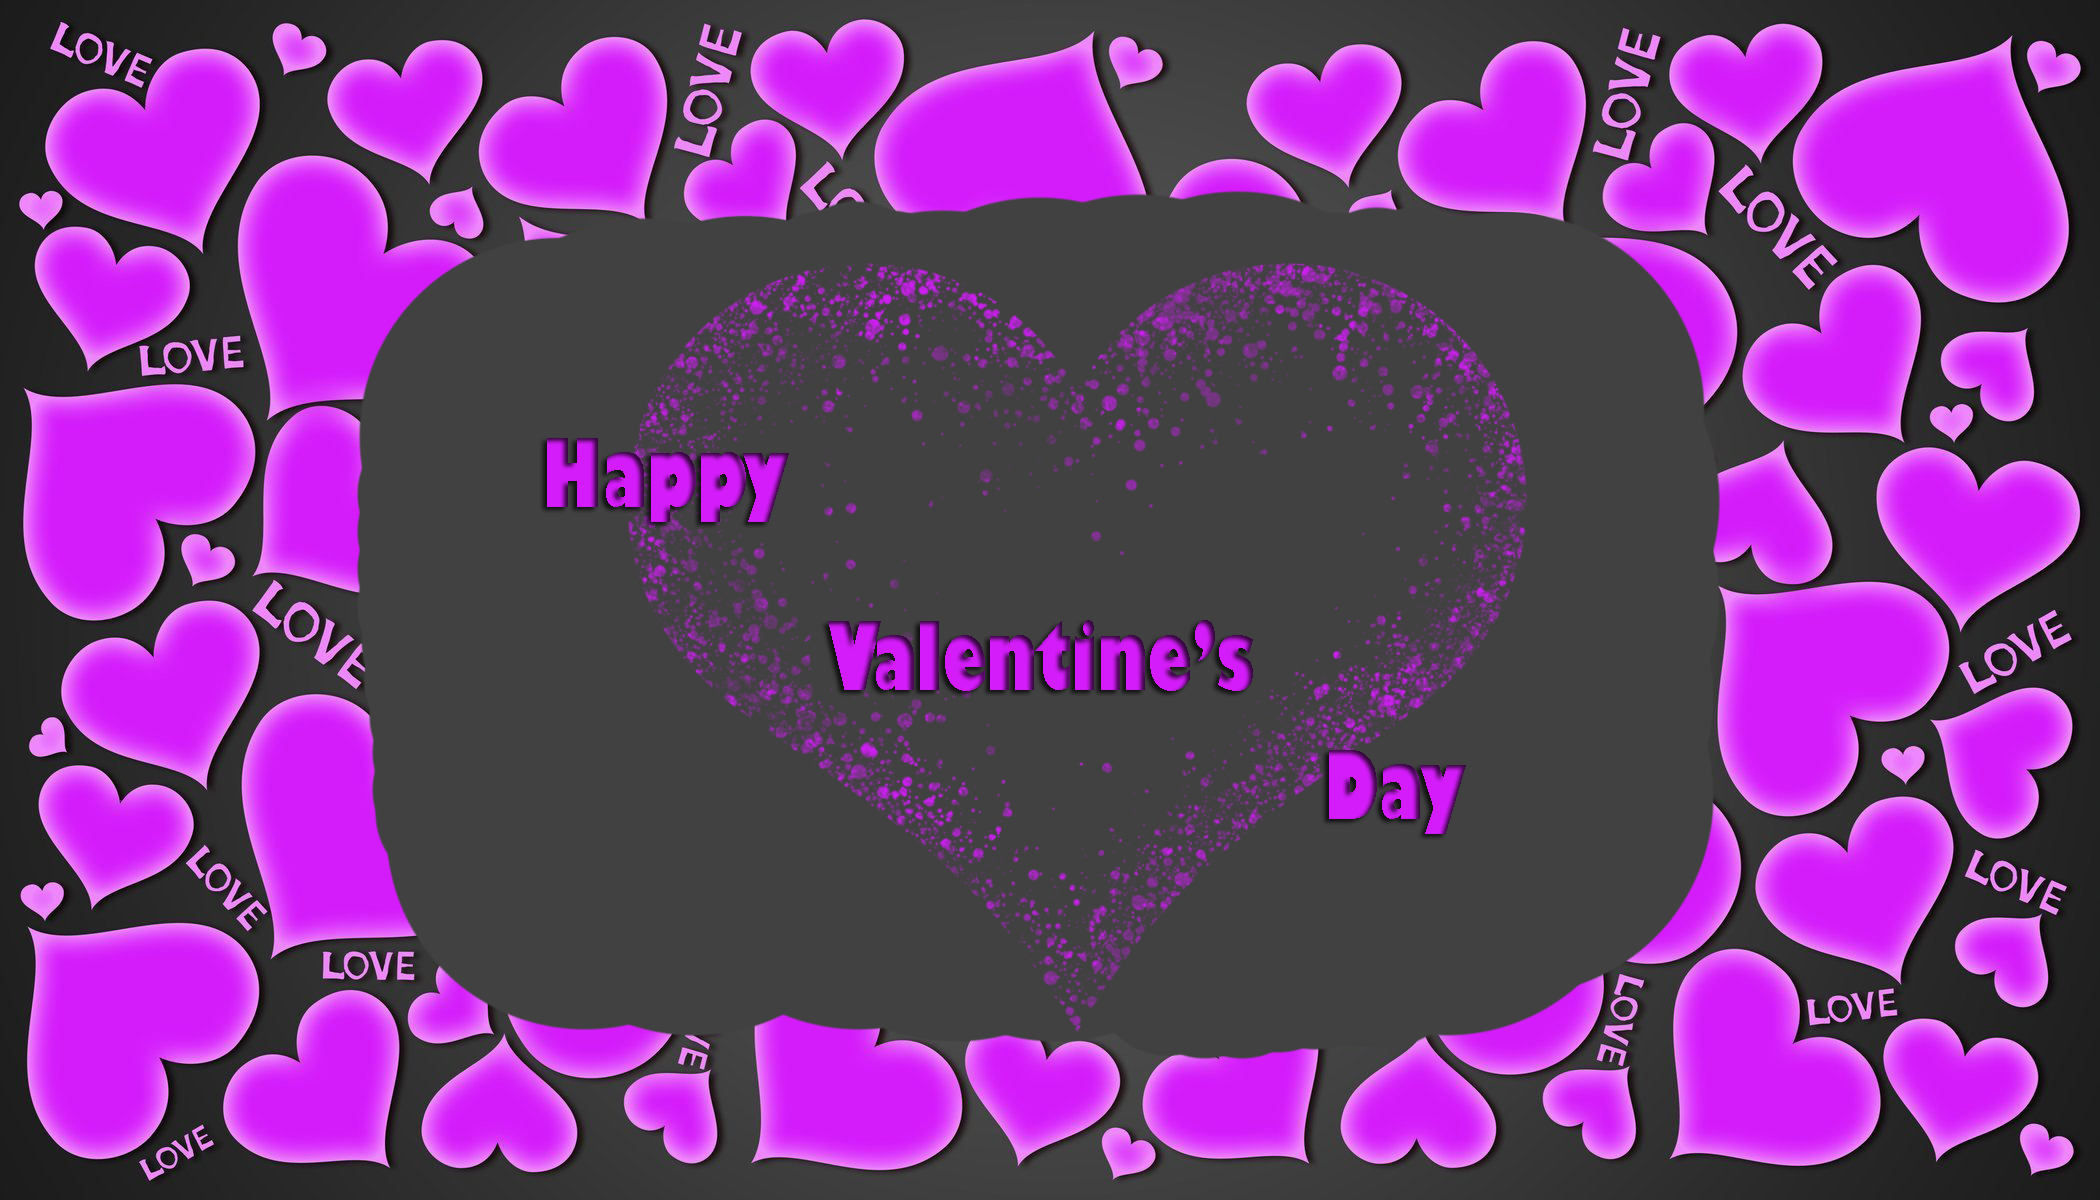 happy-valentine's-Day-images-wishes-cards-quotes